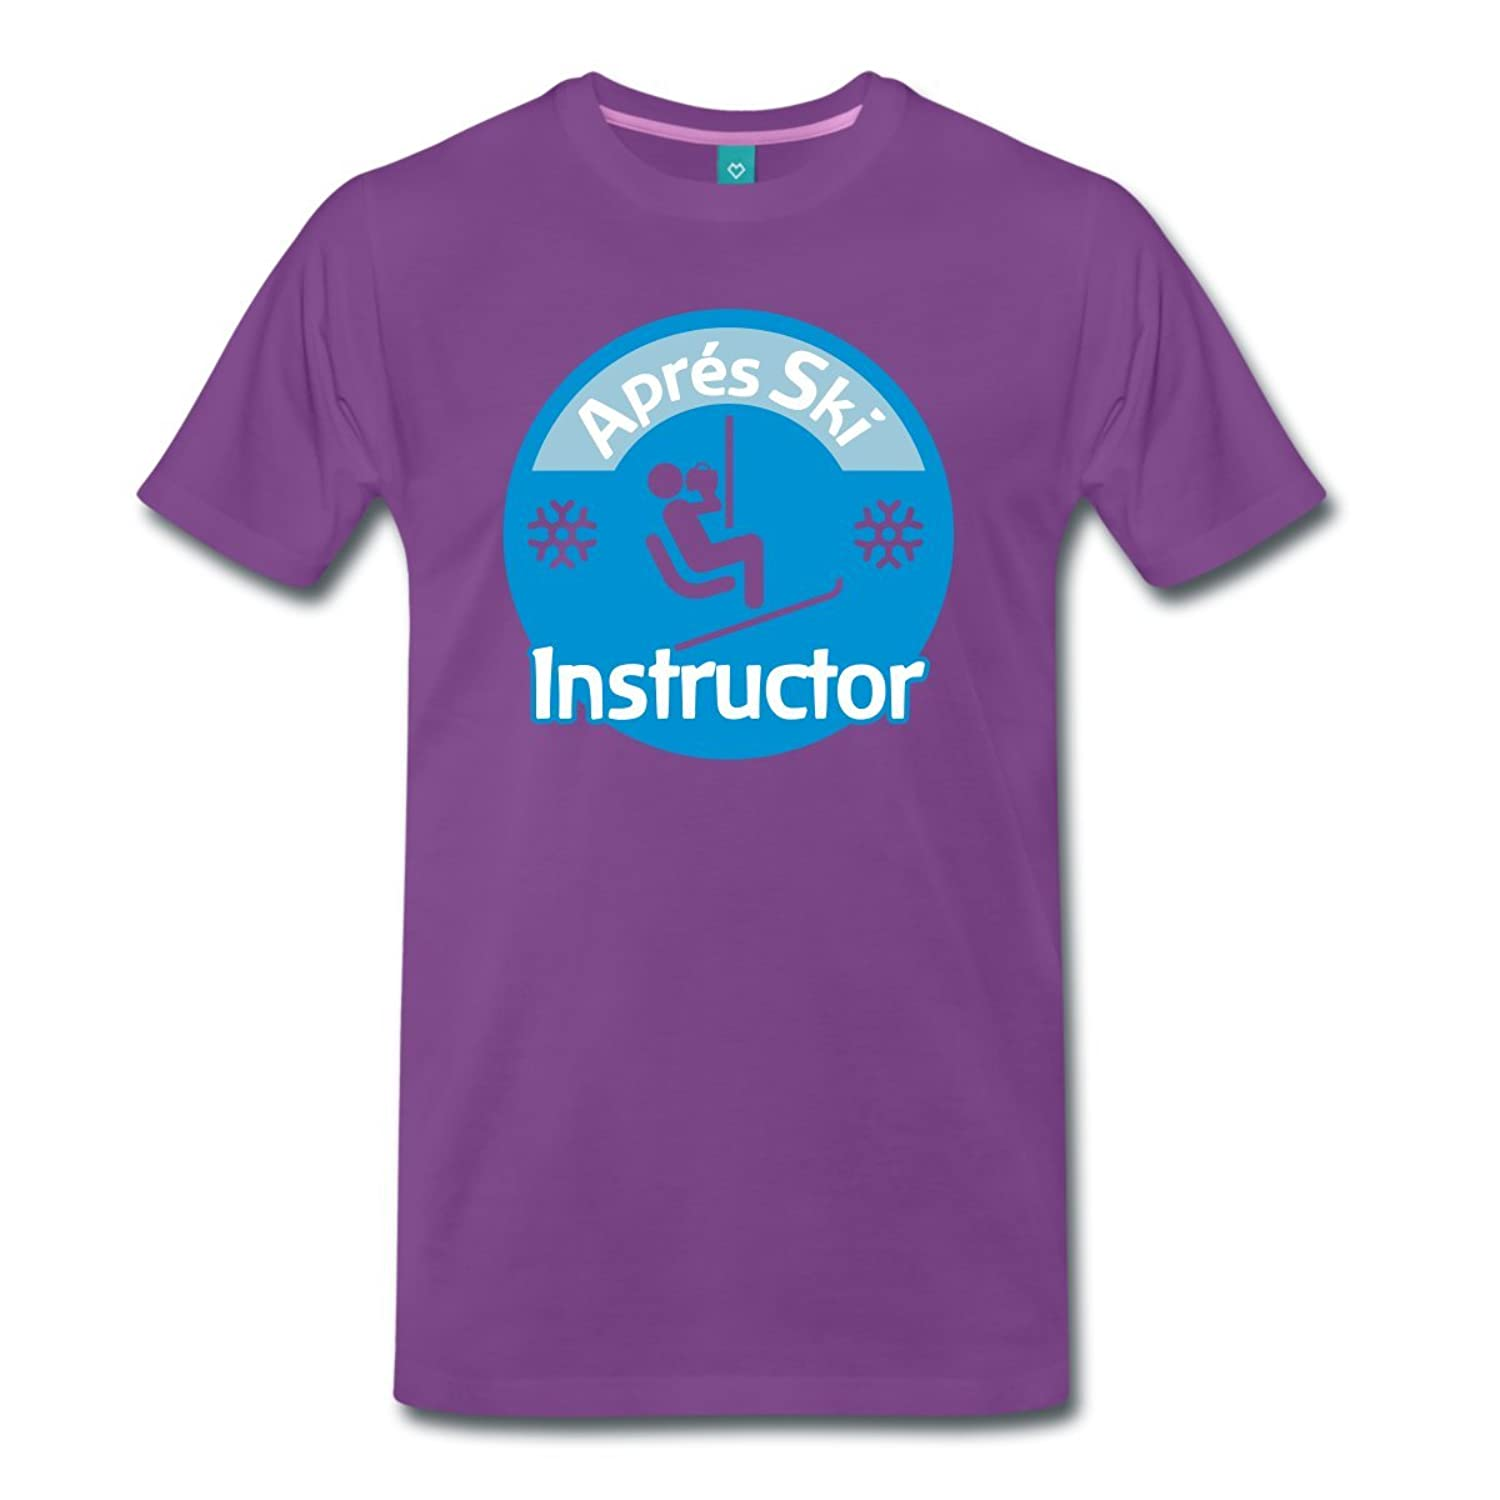 Aprés Ski Instructor Männer Premium T-Shirt von Spreadshirt®‎‎